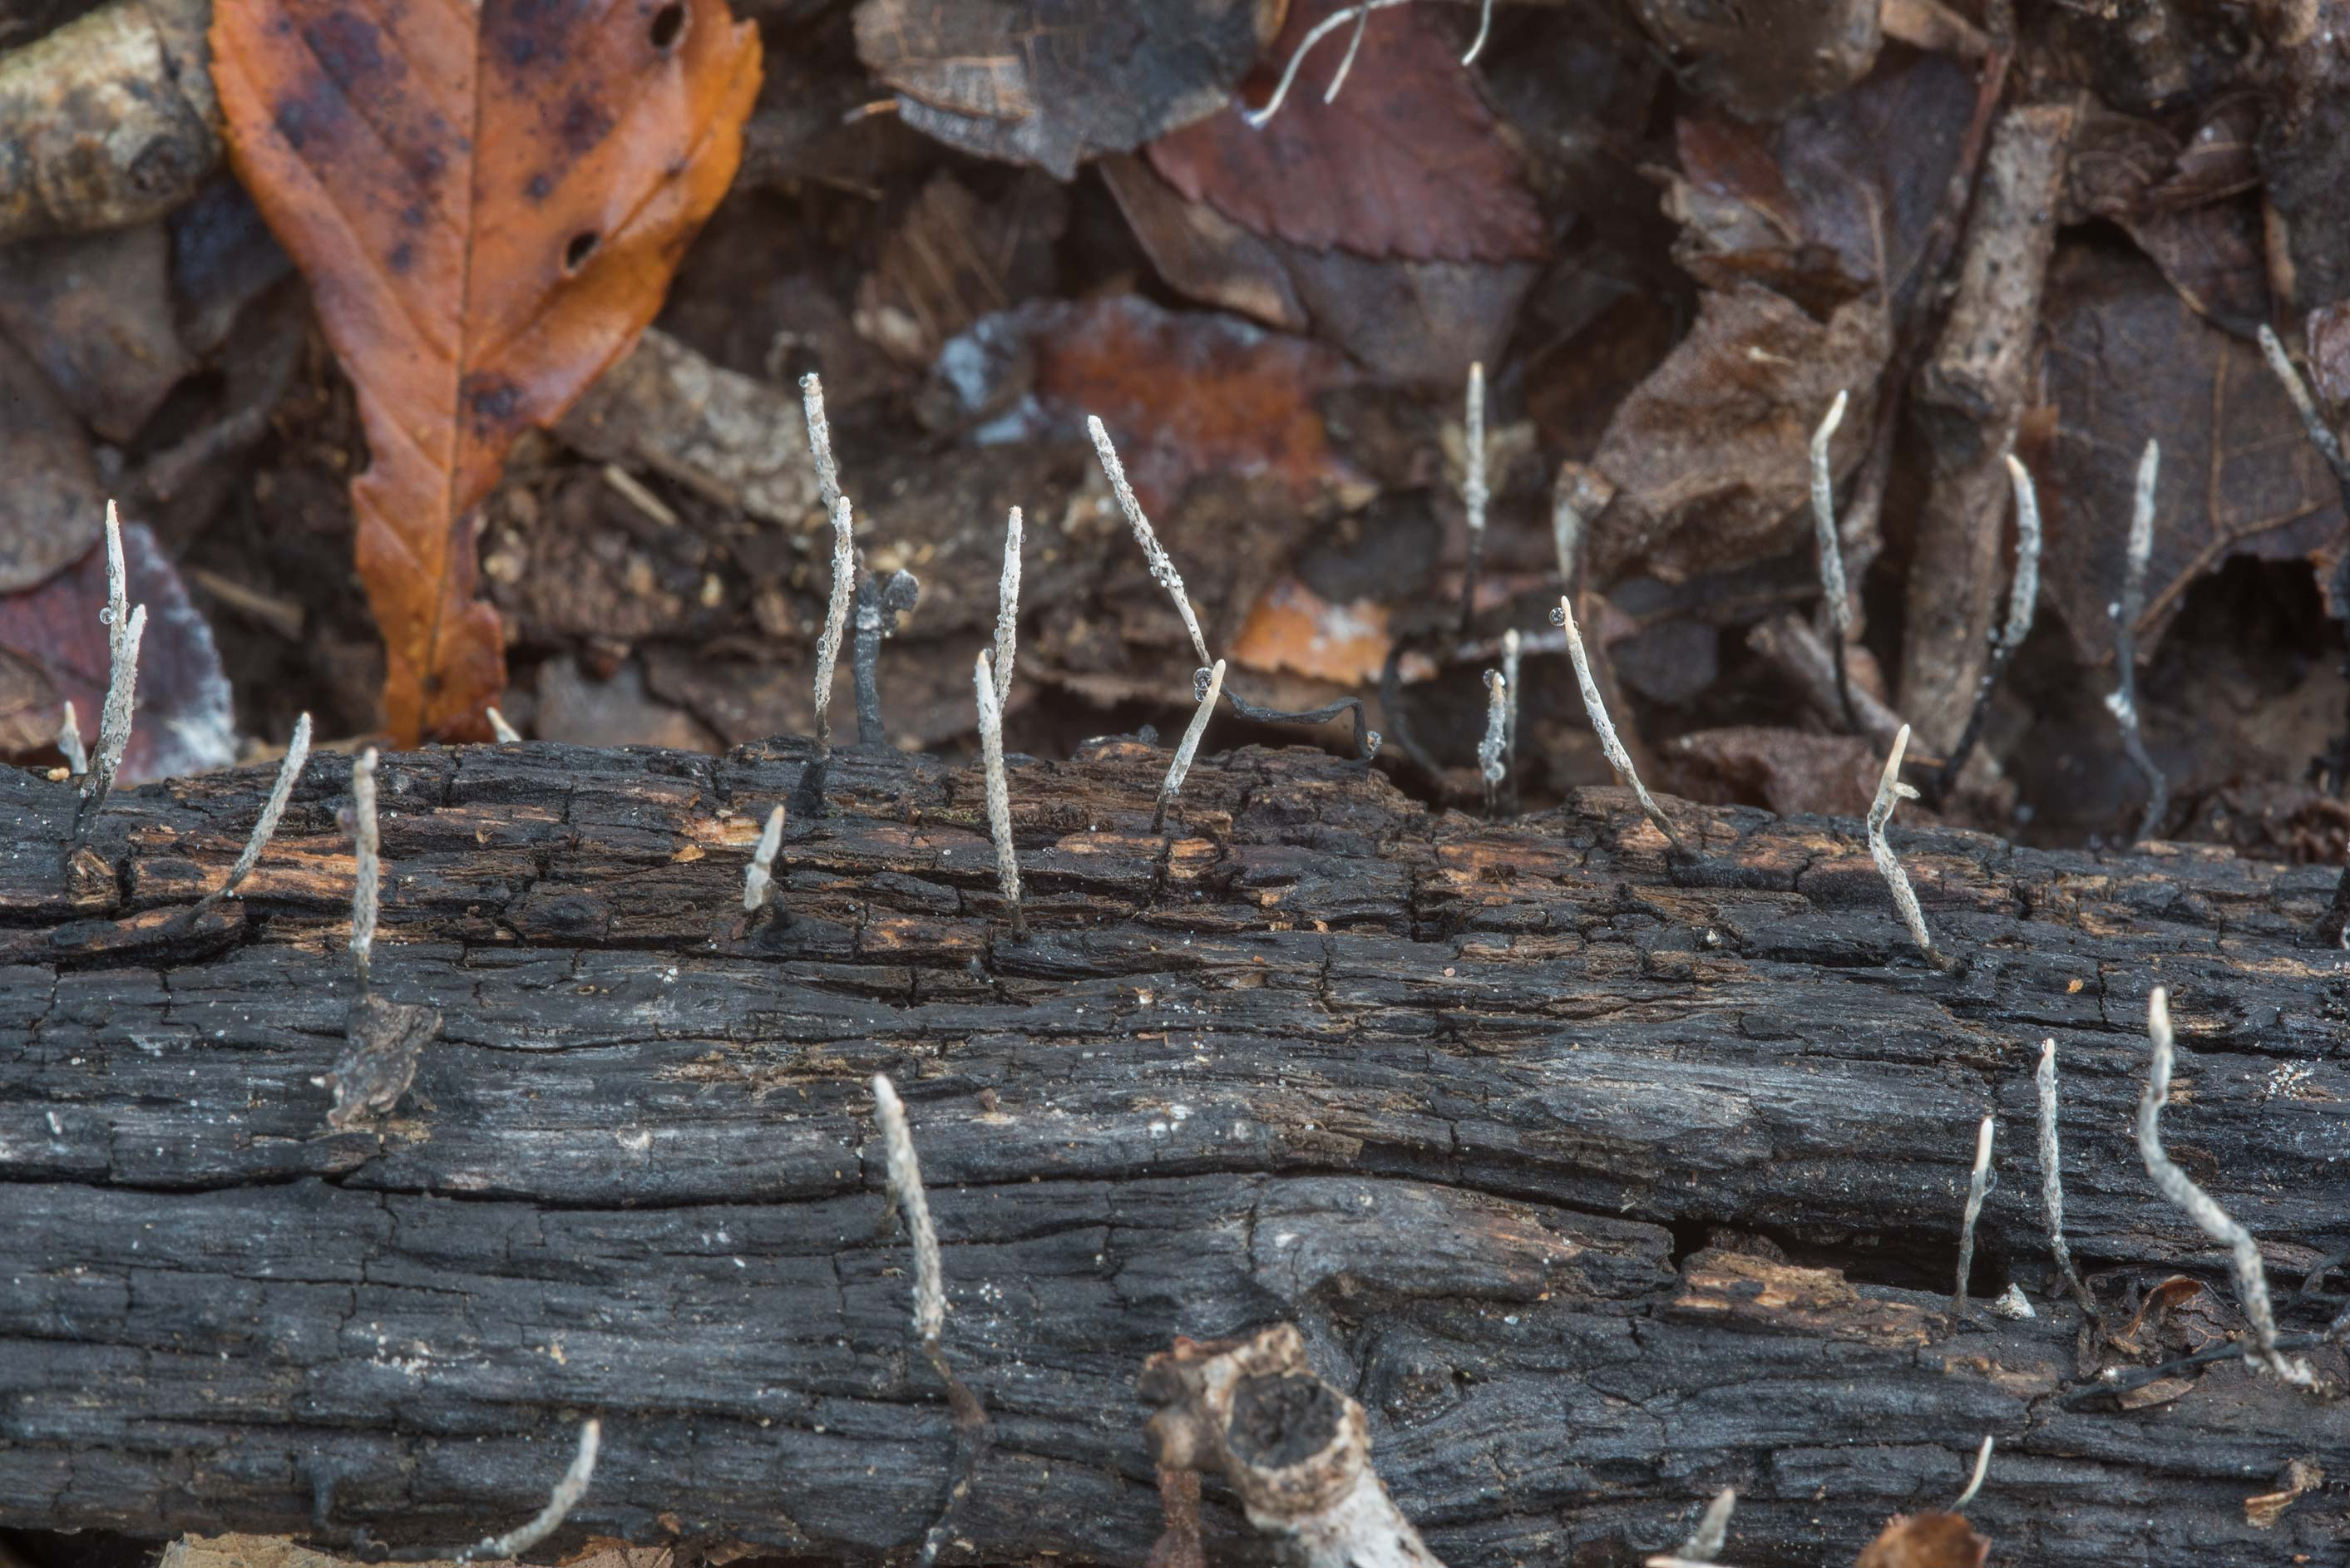 Thin Xylaria mushrooms on a rotten oak log in Lick Creek Park. College Station, Texas